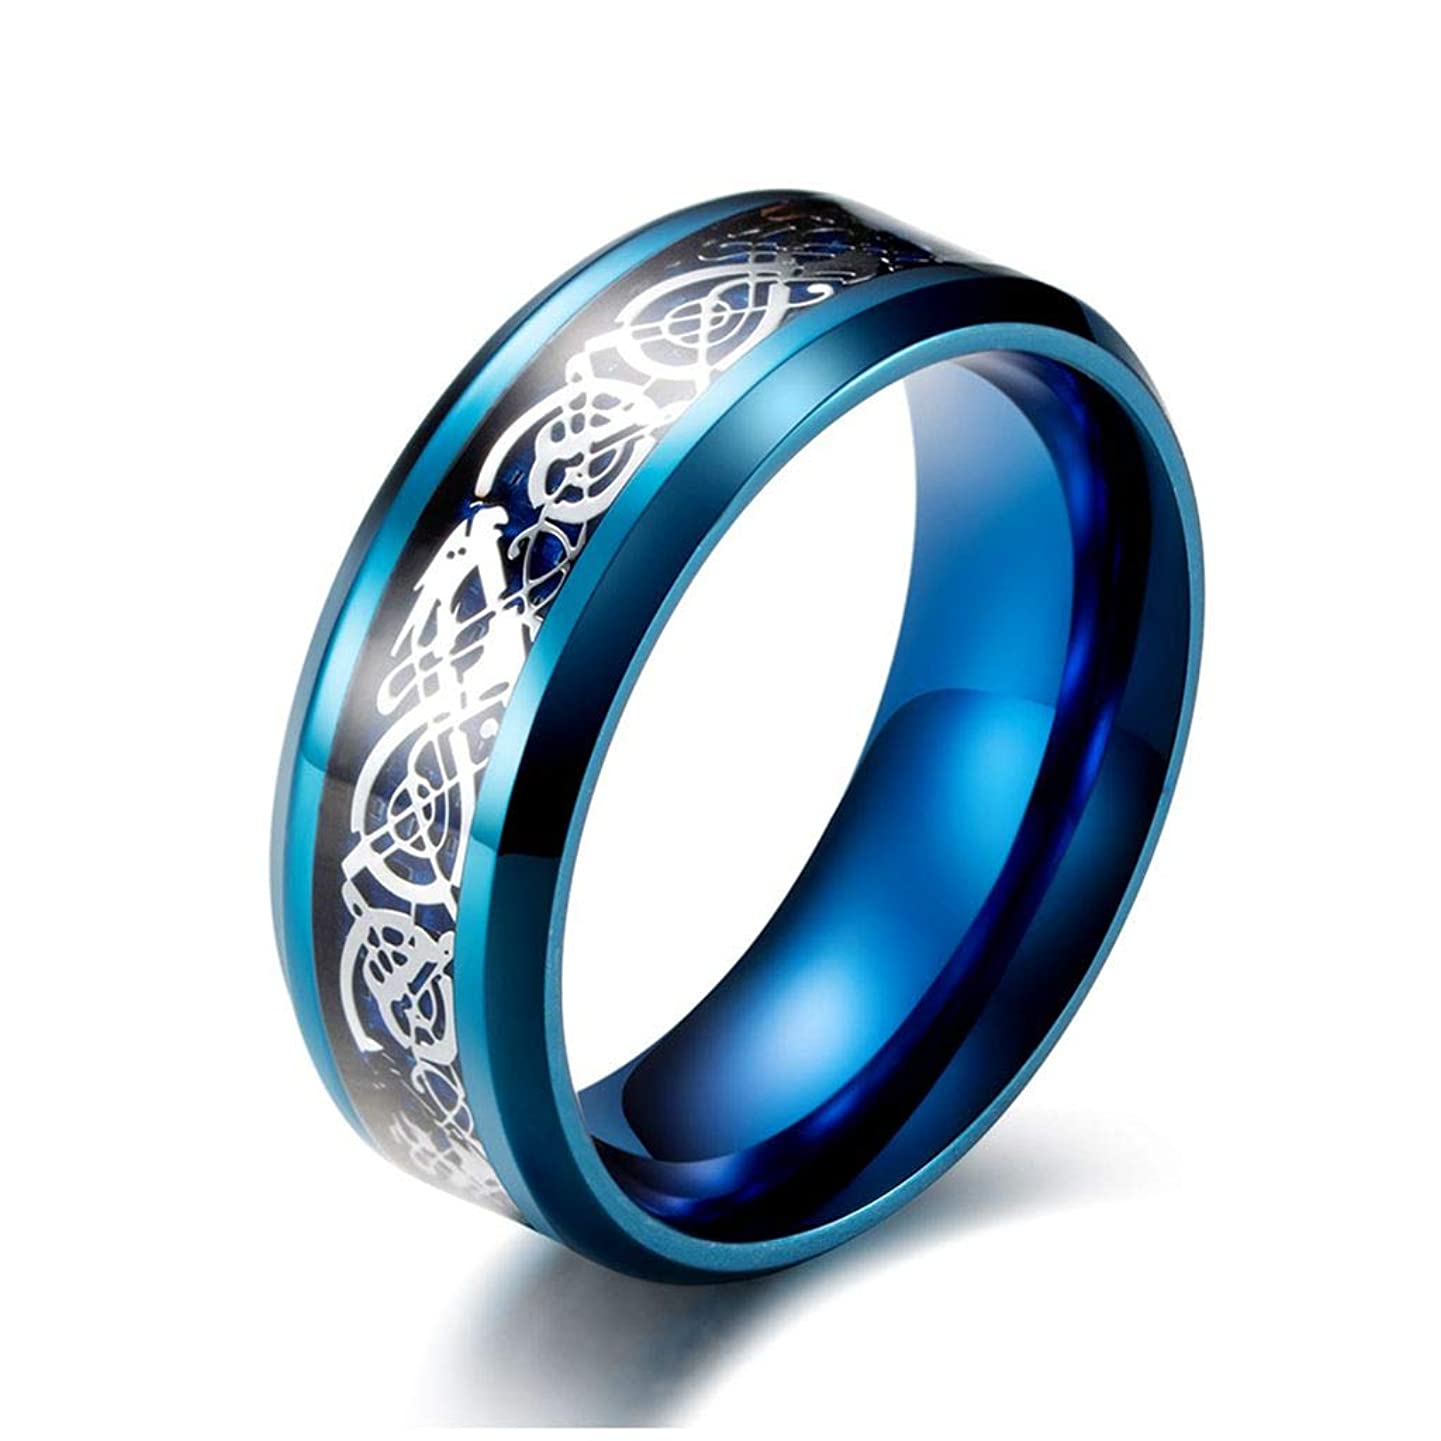 LEEYA NL12 8mm Tungsten Carbide Ring Silvering Celtic Dragon Blue Carbon Fibre Inlay Wedding Band Size 6-13 (12, Blue)